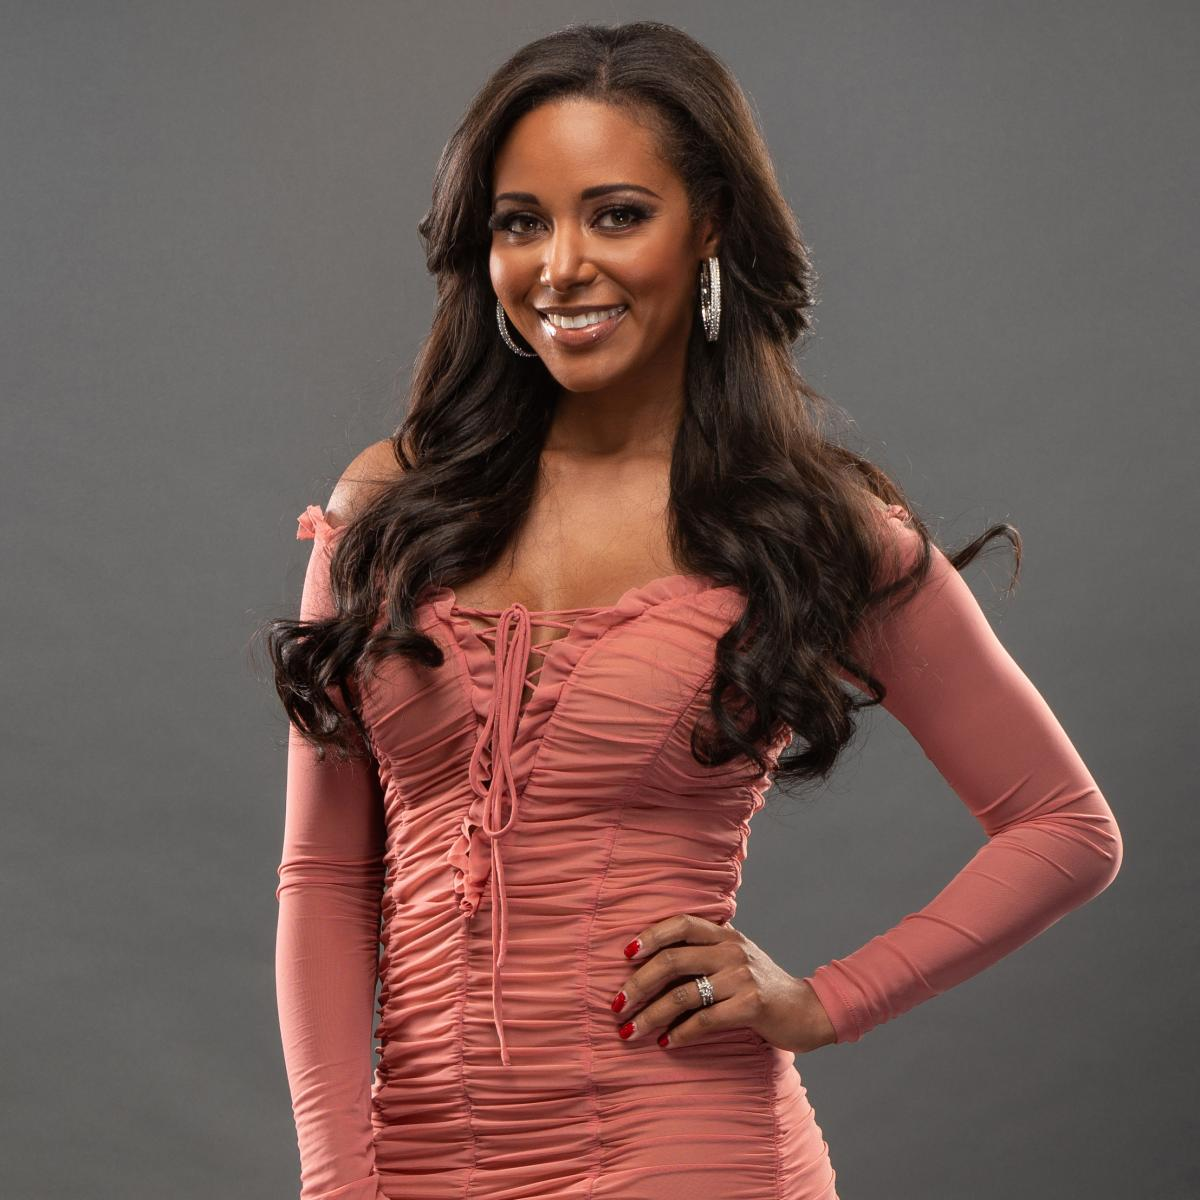 Off the Top Rope: Brandi Rhodes Ready to Take on the Wrestling World with AEW